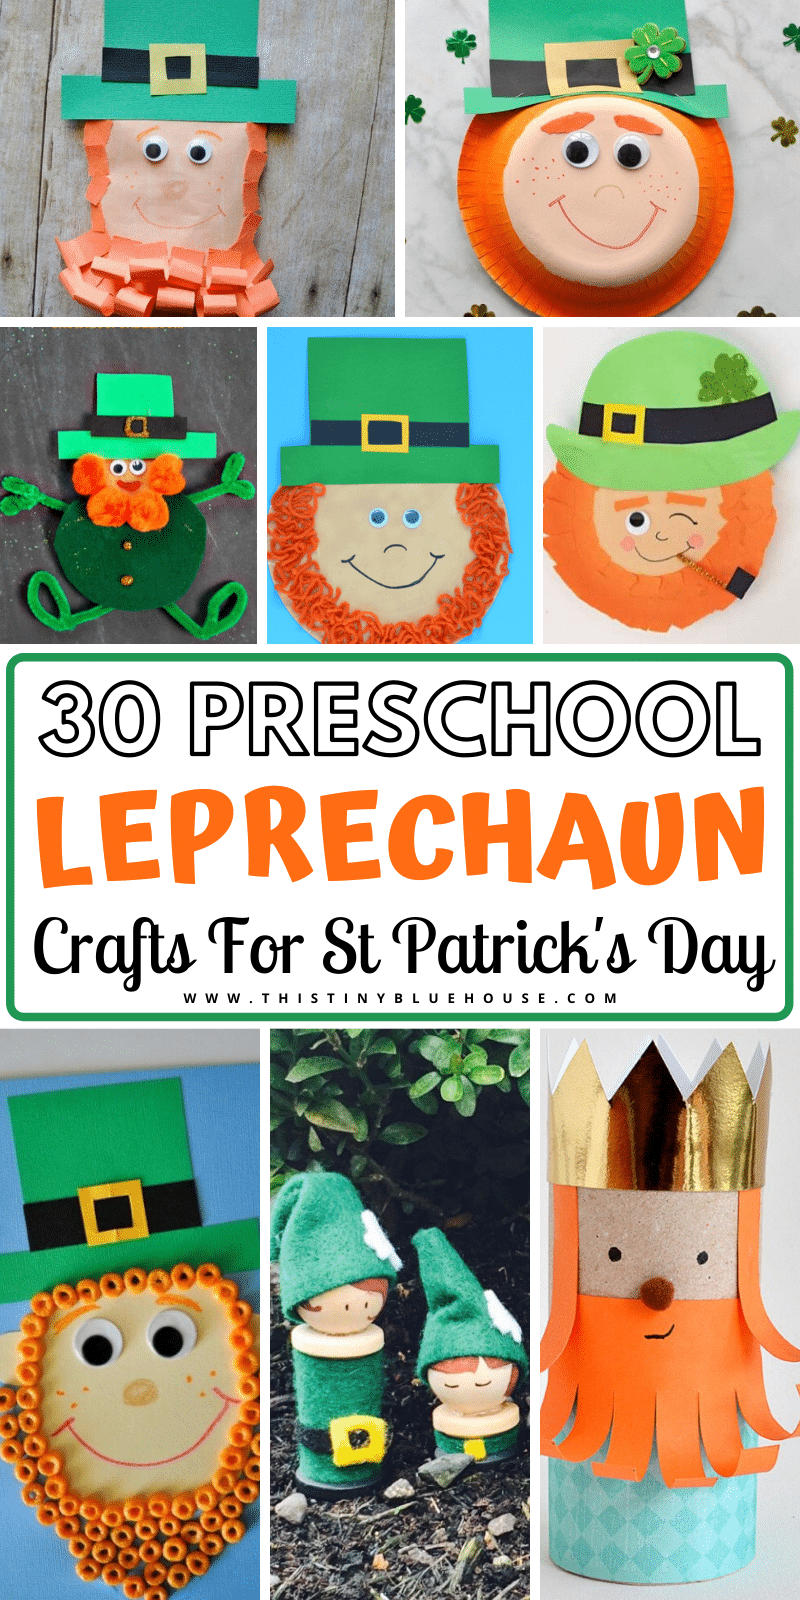 Here are 30 best super cute Leprechaun crafts for St. Patrick's day. These crafts are suitable for kids both young and old and are a perfect way to celebrate St. Patrick's Day. #StPatricksDayCrafts #BestStPatricksDayCrafts #LeprechaunCrafts #StPatricksDayCraftIdeas #StPatricksDayCraftsForToddlers